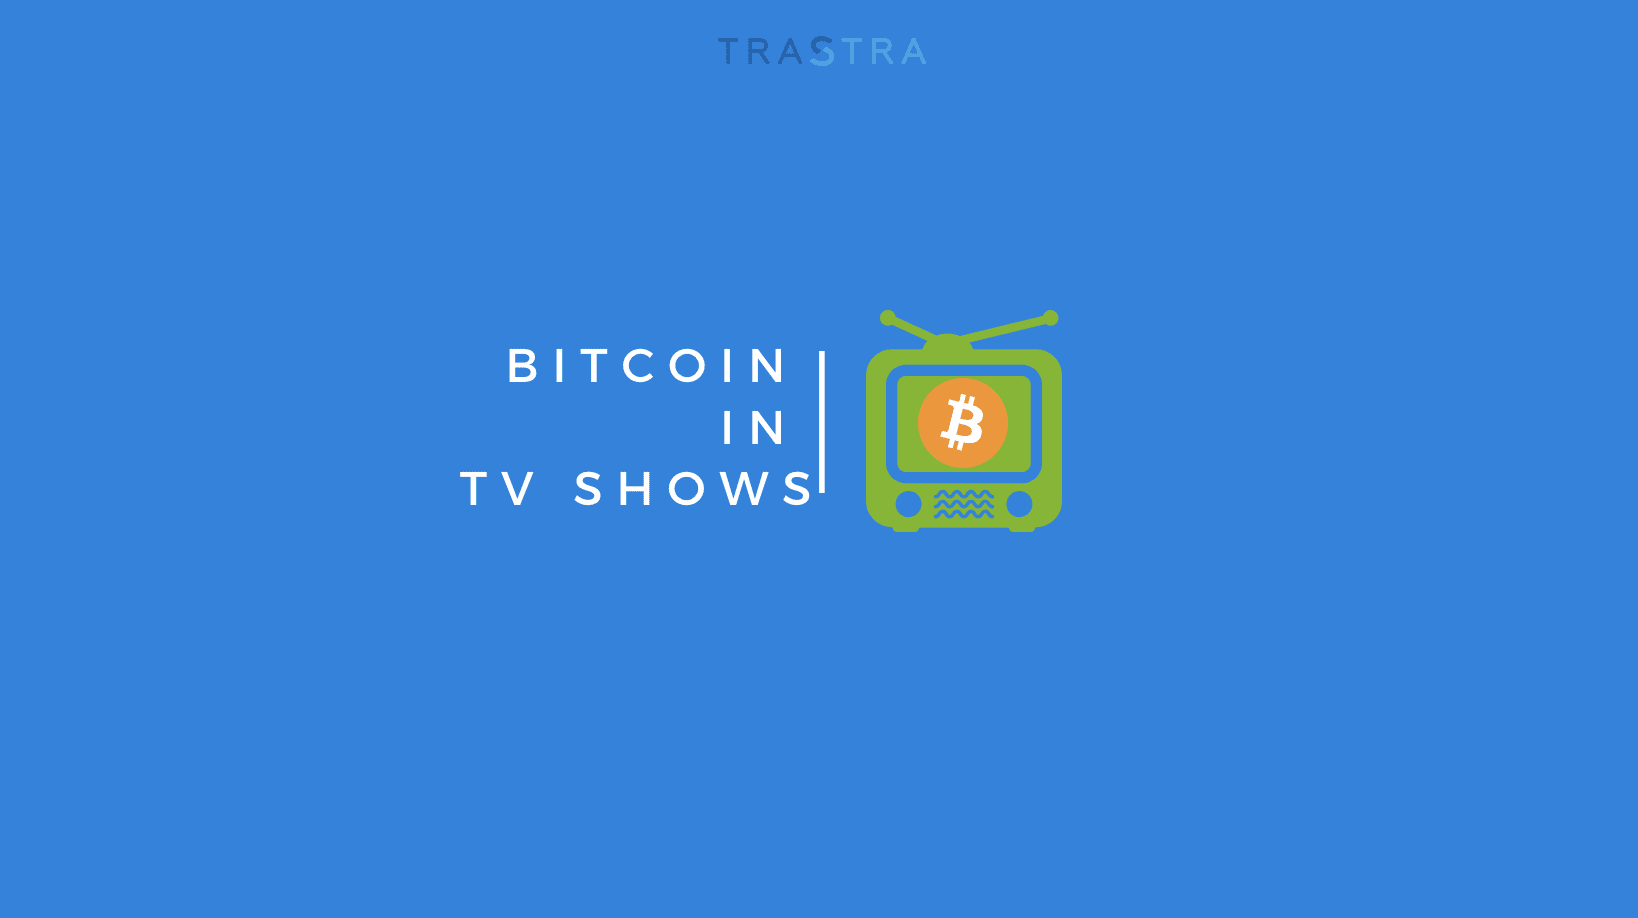 bitcoin_tvshows